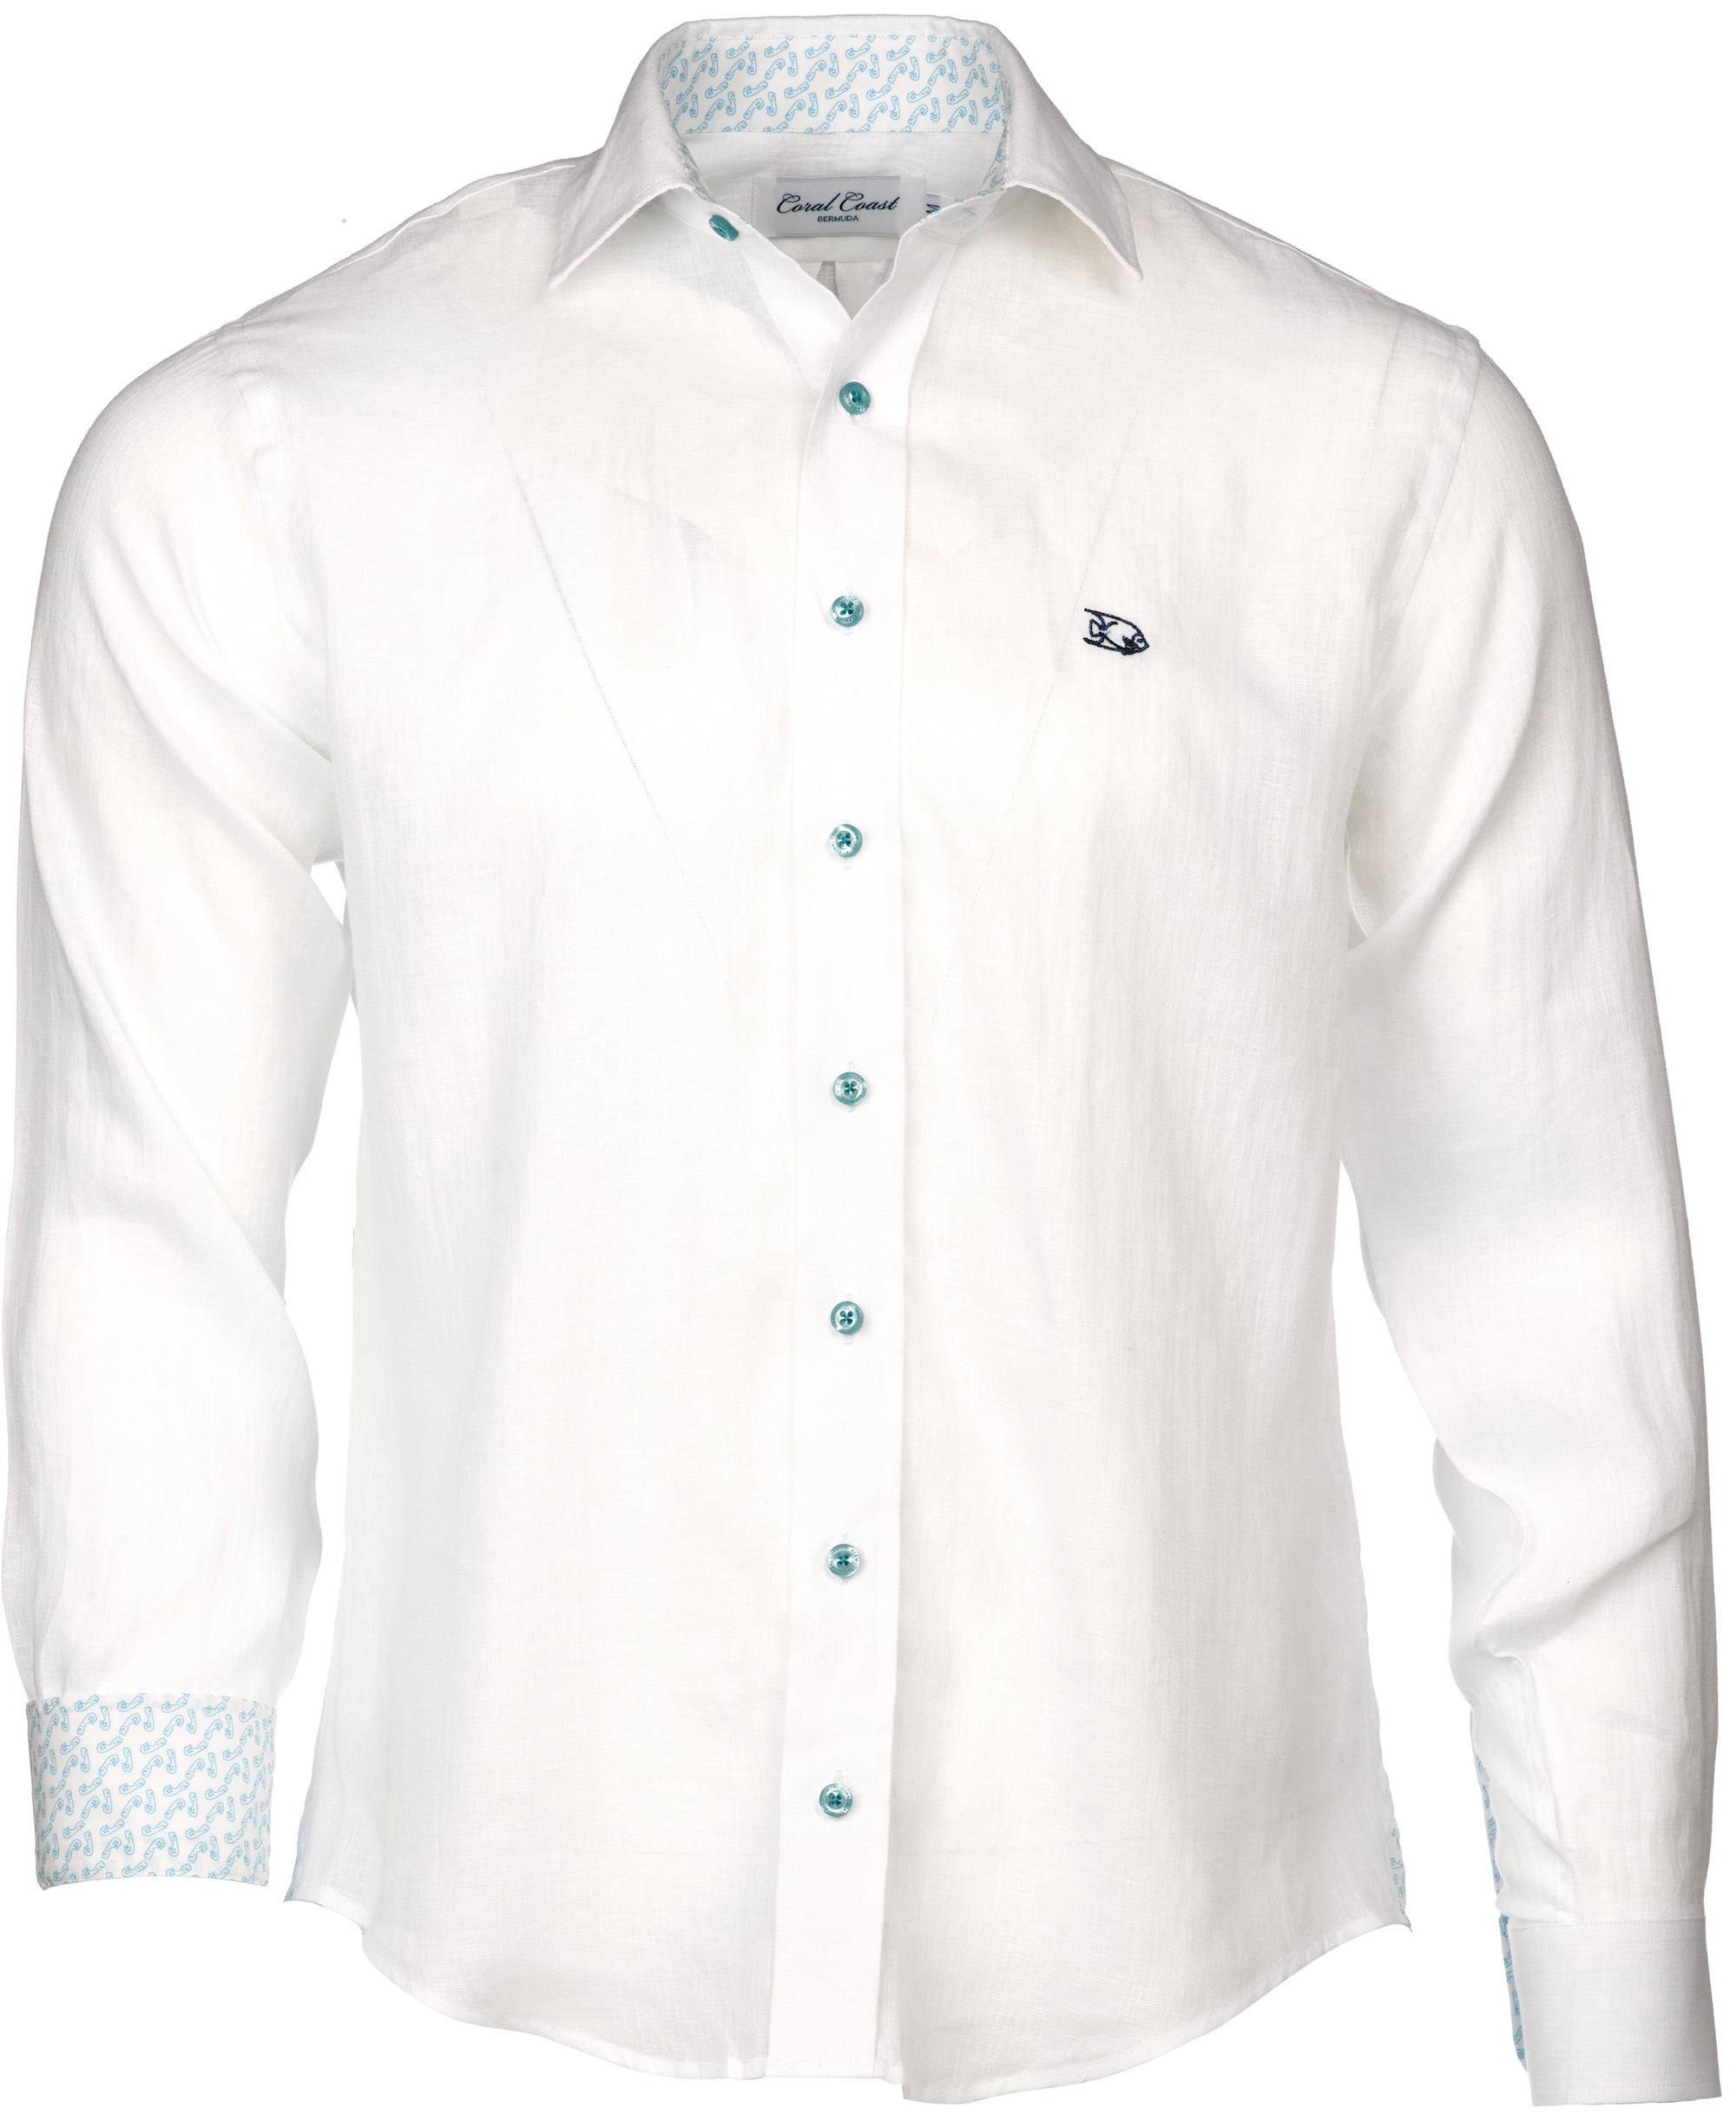 White Linen Dress Shirt